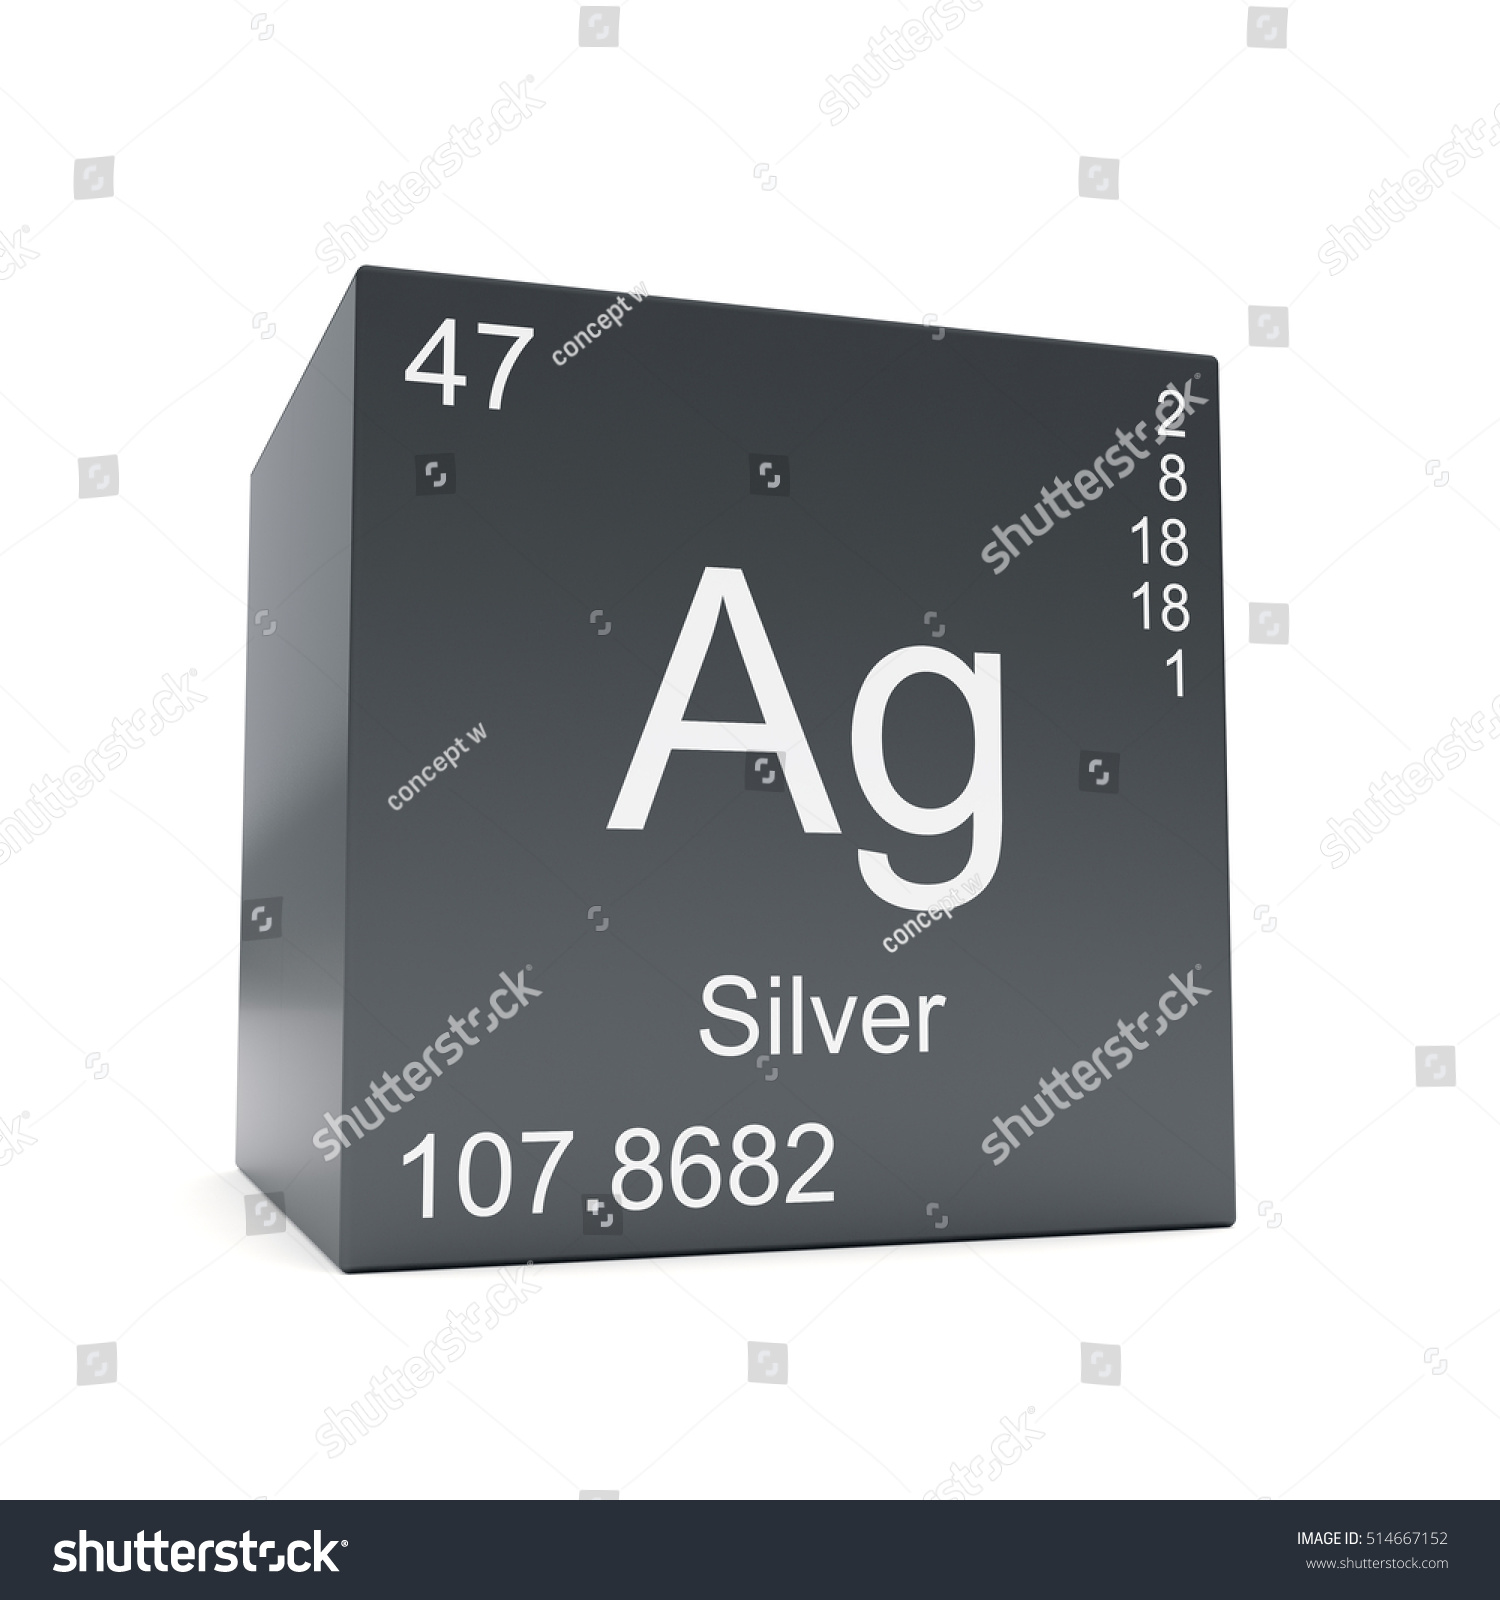 Silver abbreviation periodic table images periodic table images silver abbreviation periodic table gallery periodic table images silver abbreviation periodic table images periodic table images gamestrikefo Image collections